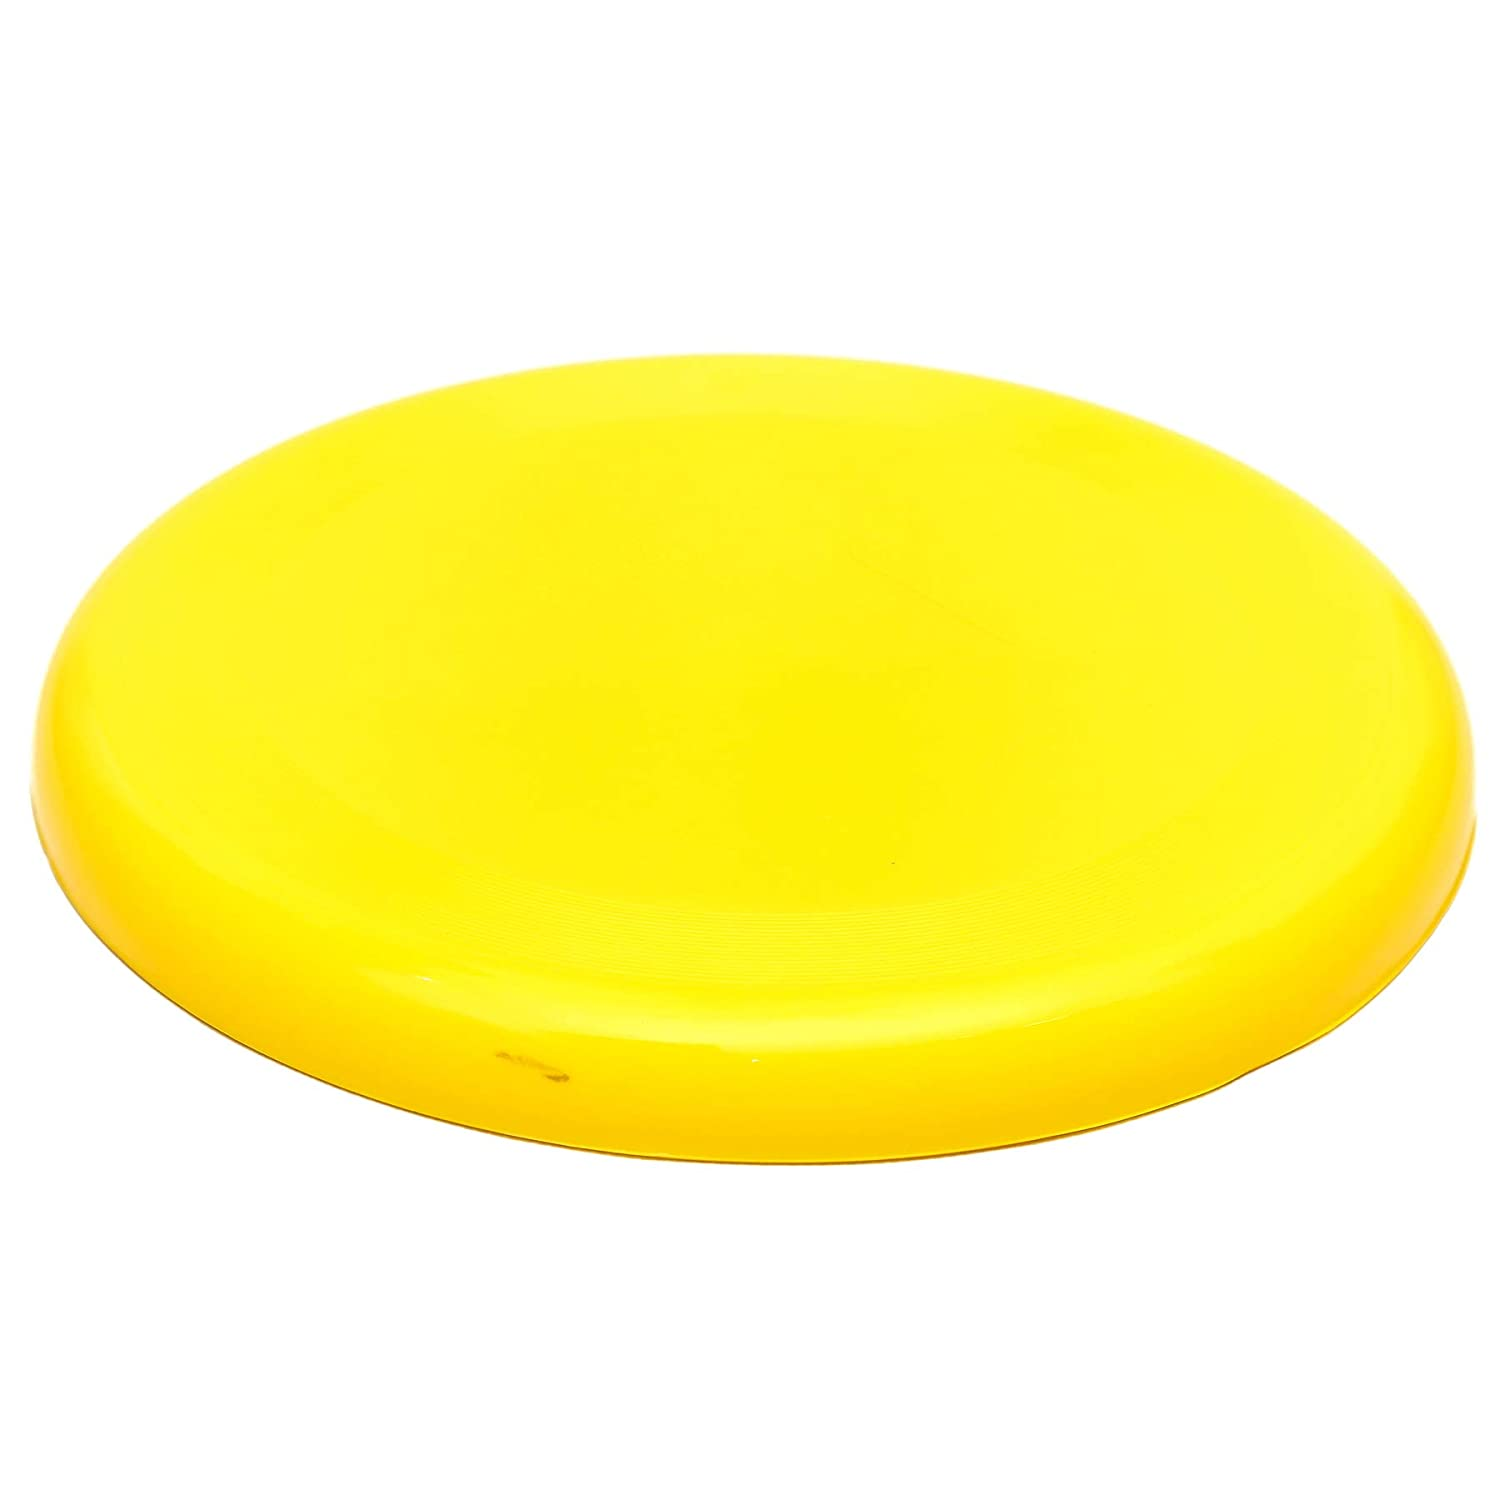 Frisbee - 12 Inches (Yellow)